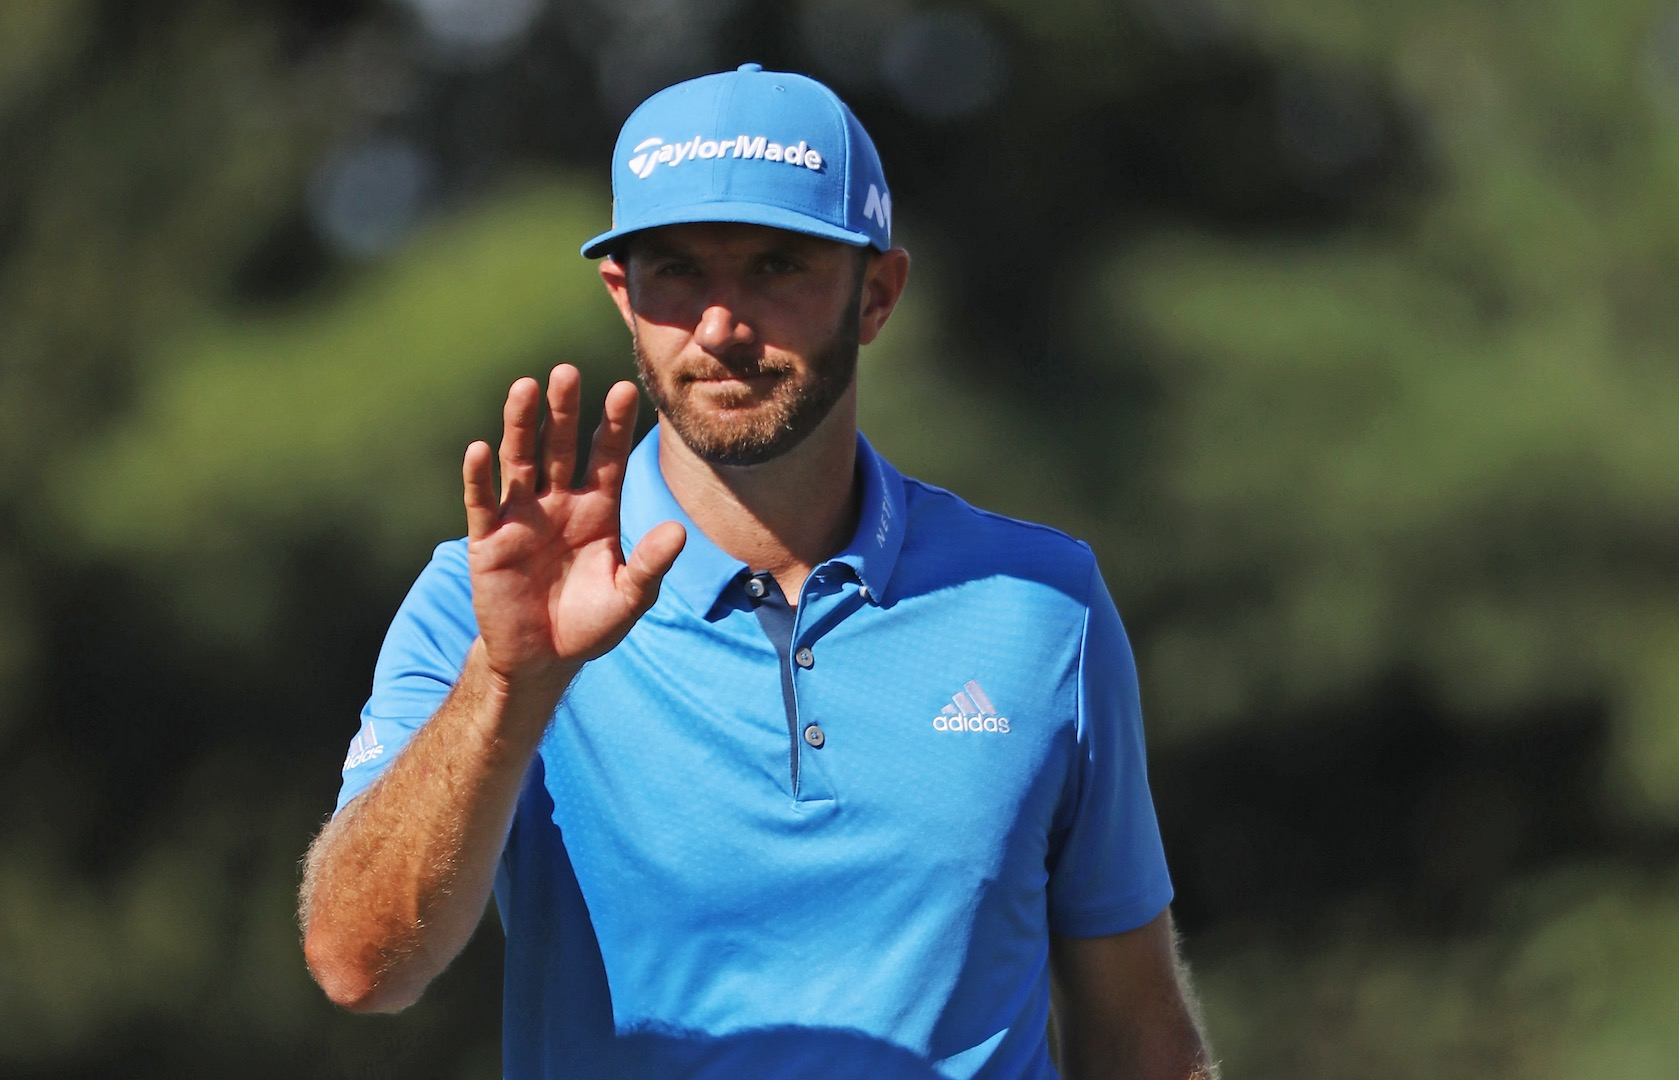 Dustin Leads Tour Championship